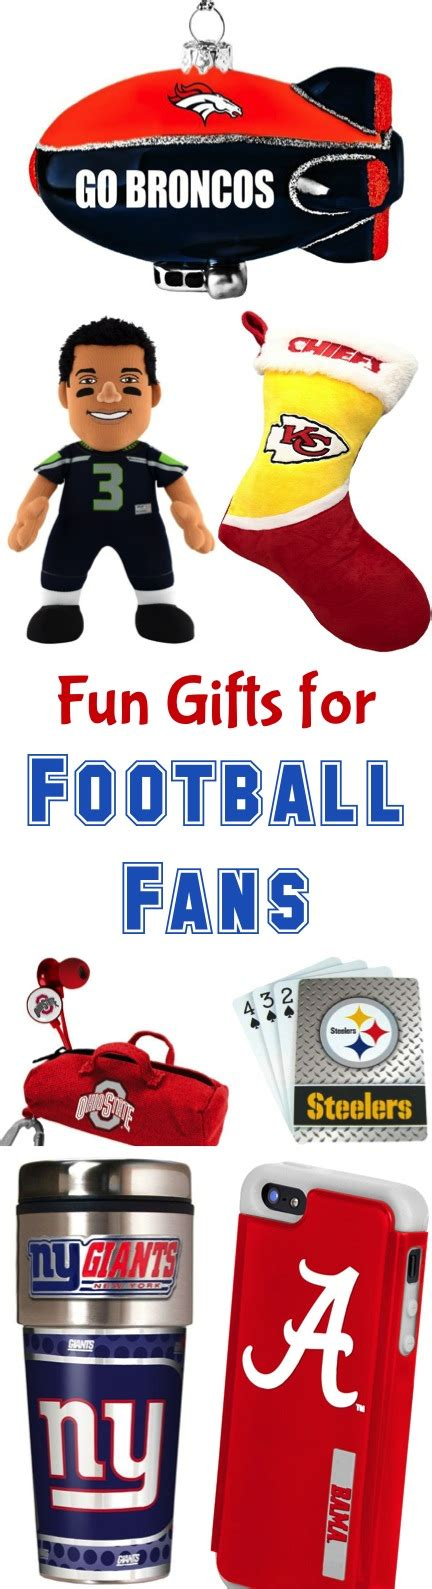 cool gifts for football fans 29 gardening gift ideas fun and unique gifts diy thrill